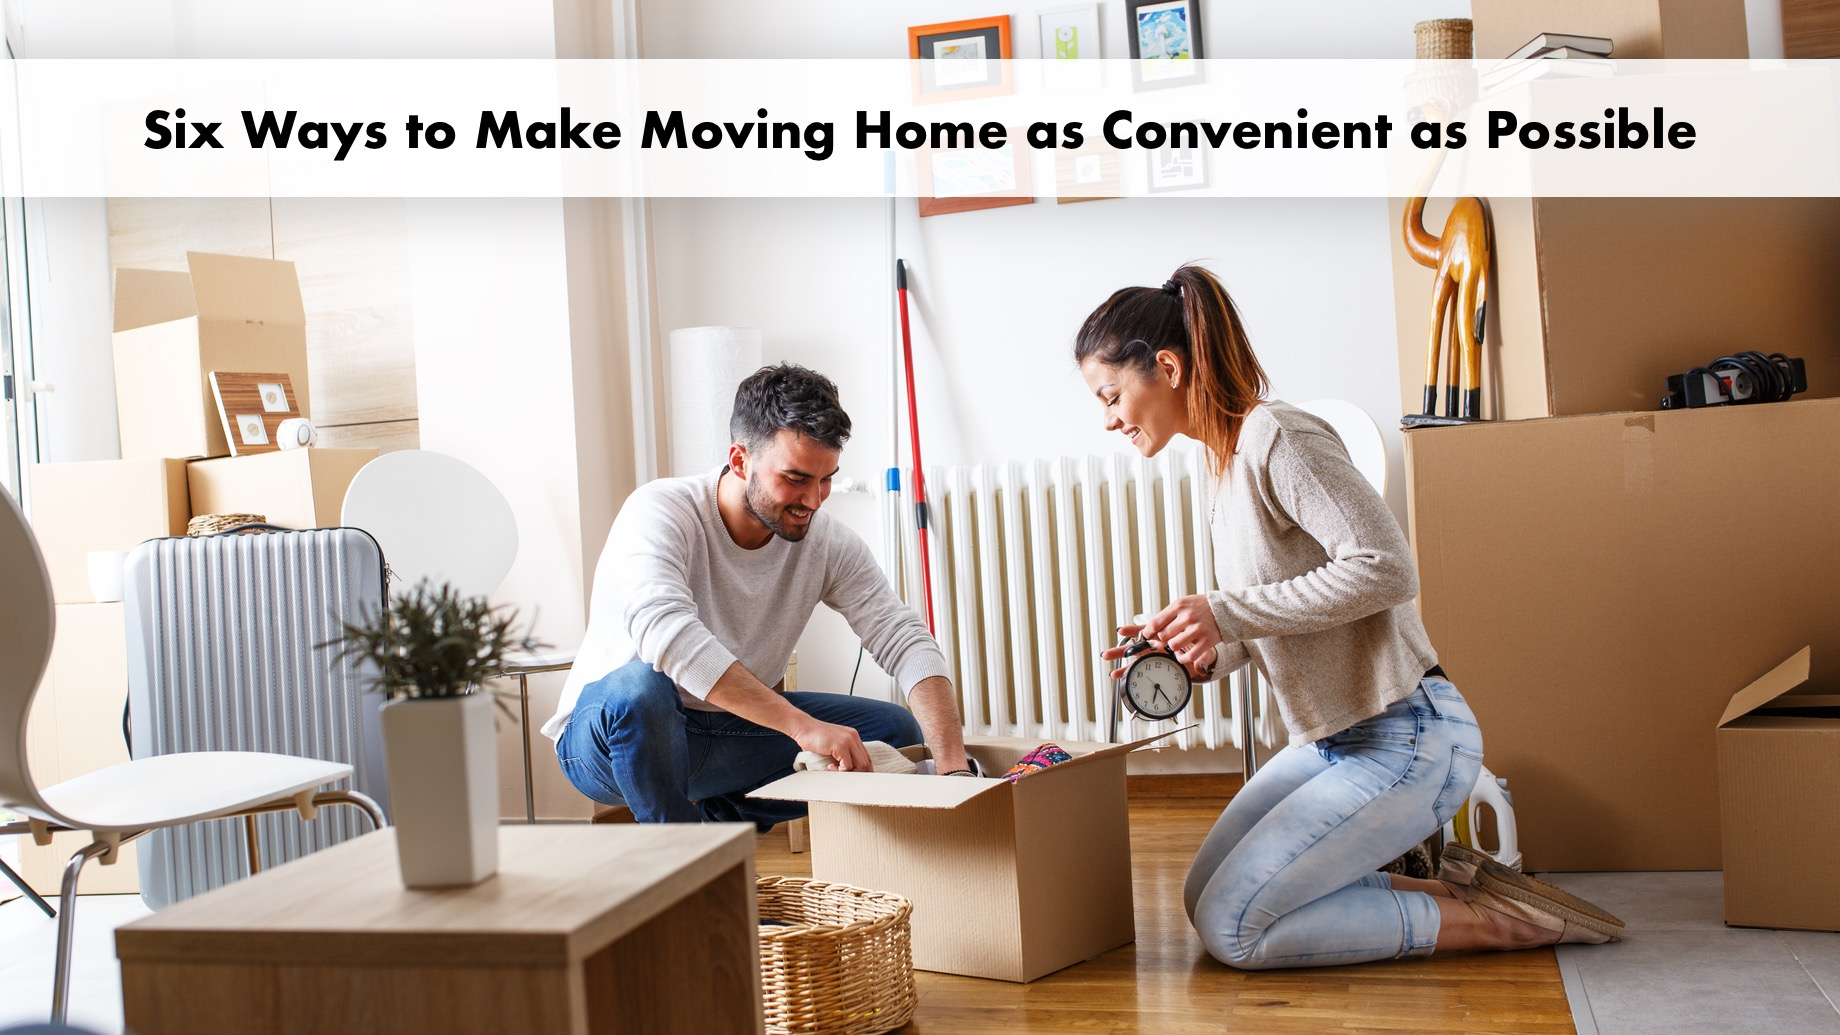 Six Ways to Make Moving Home as Convenient as Possible